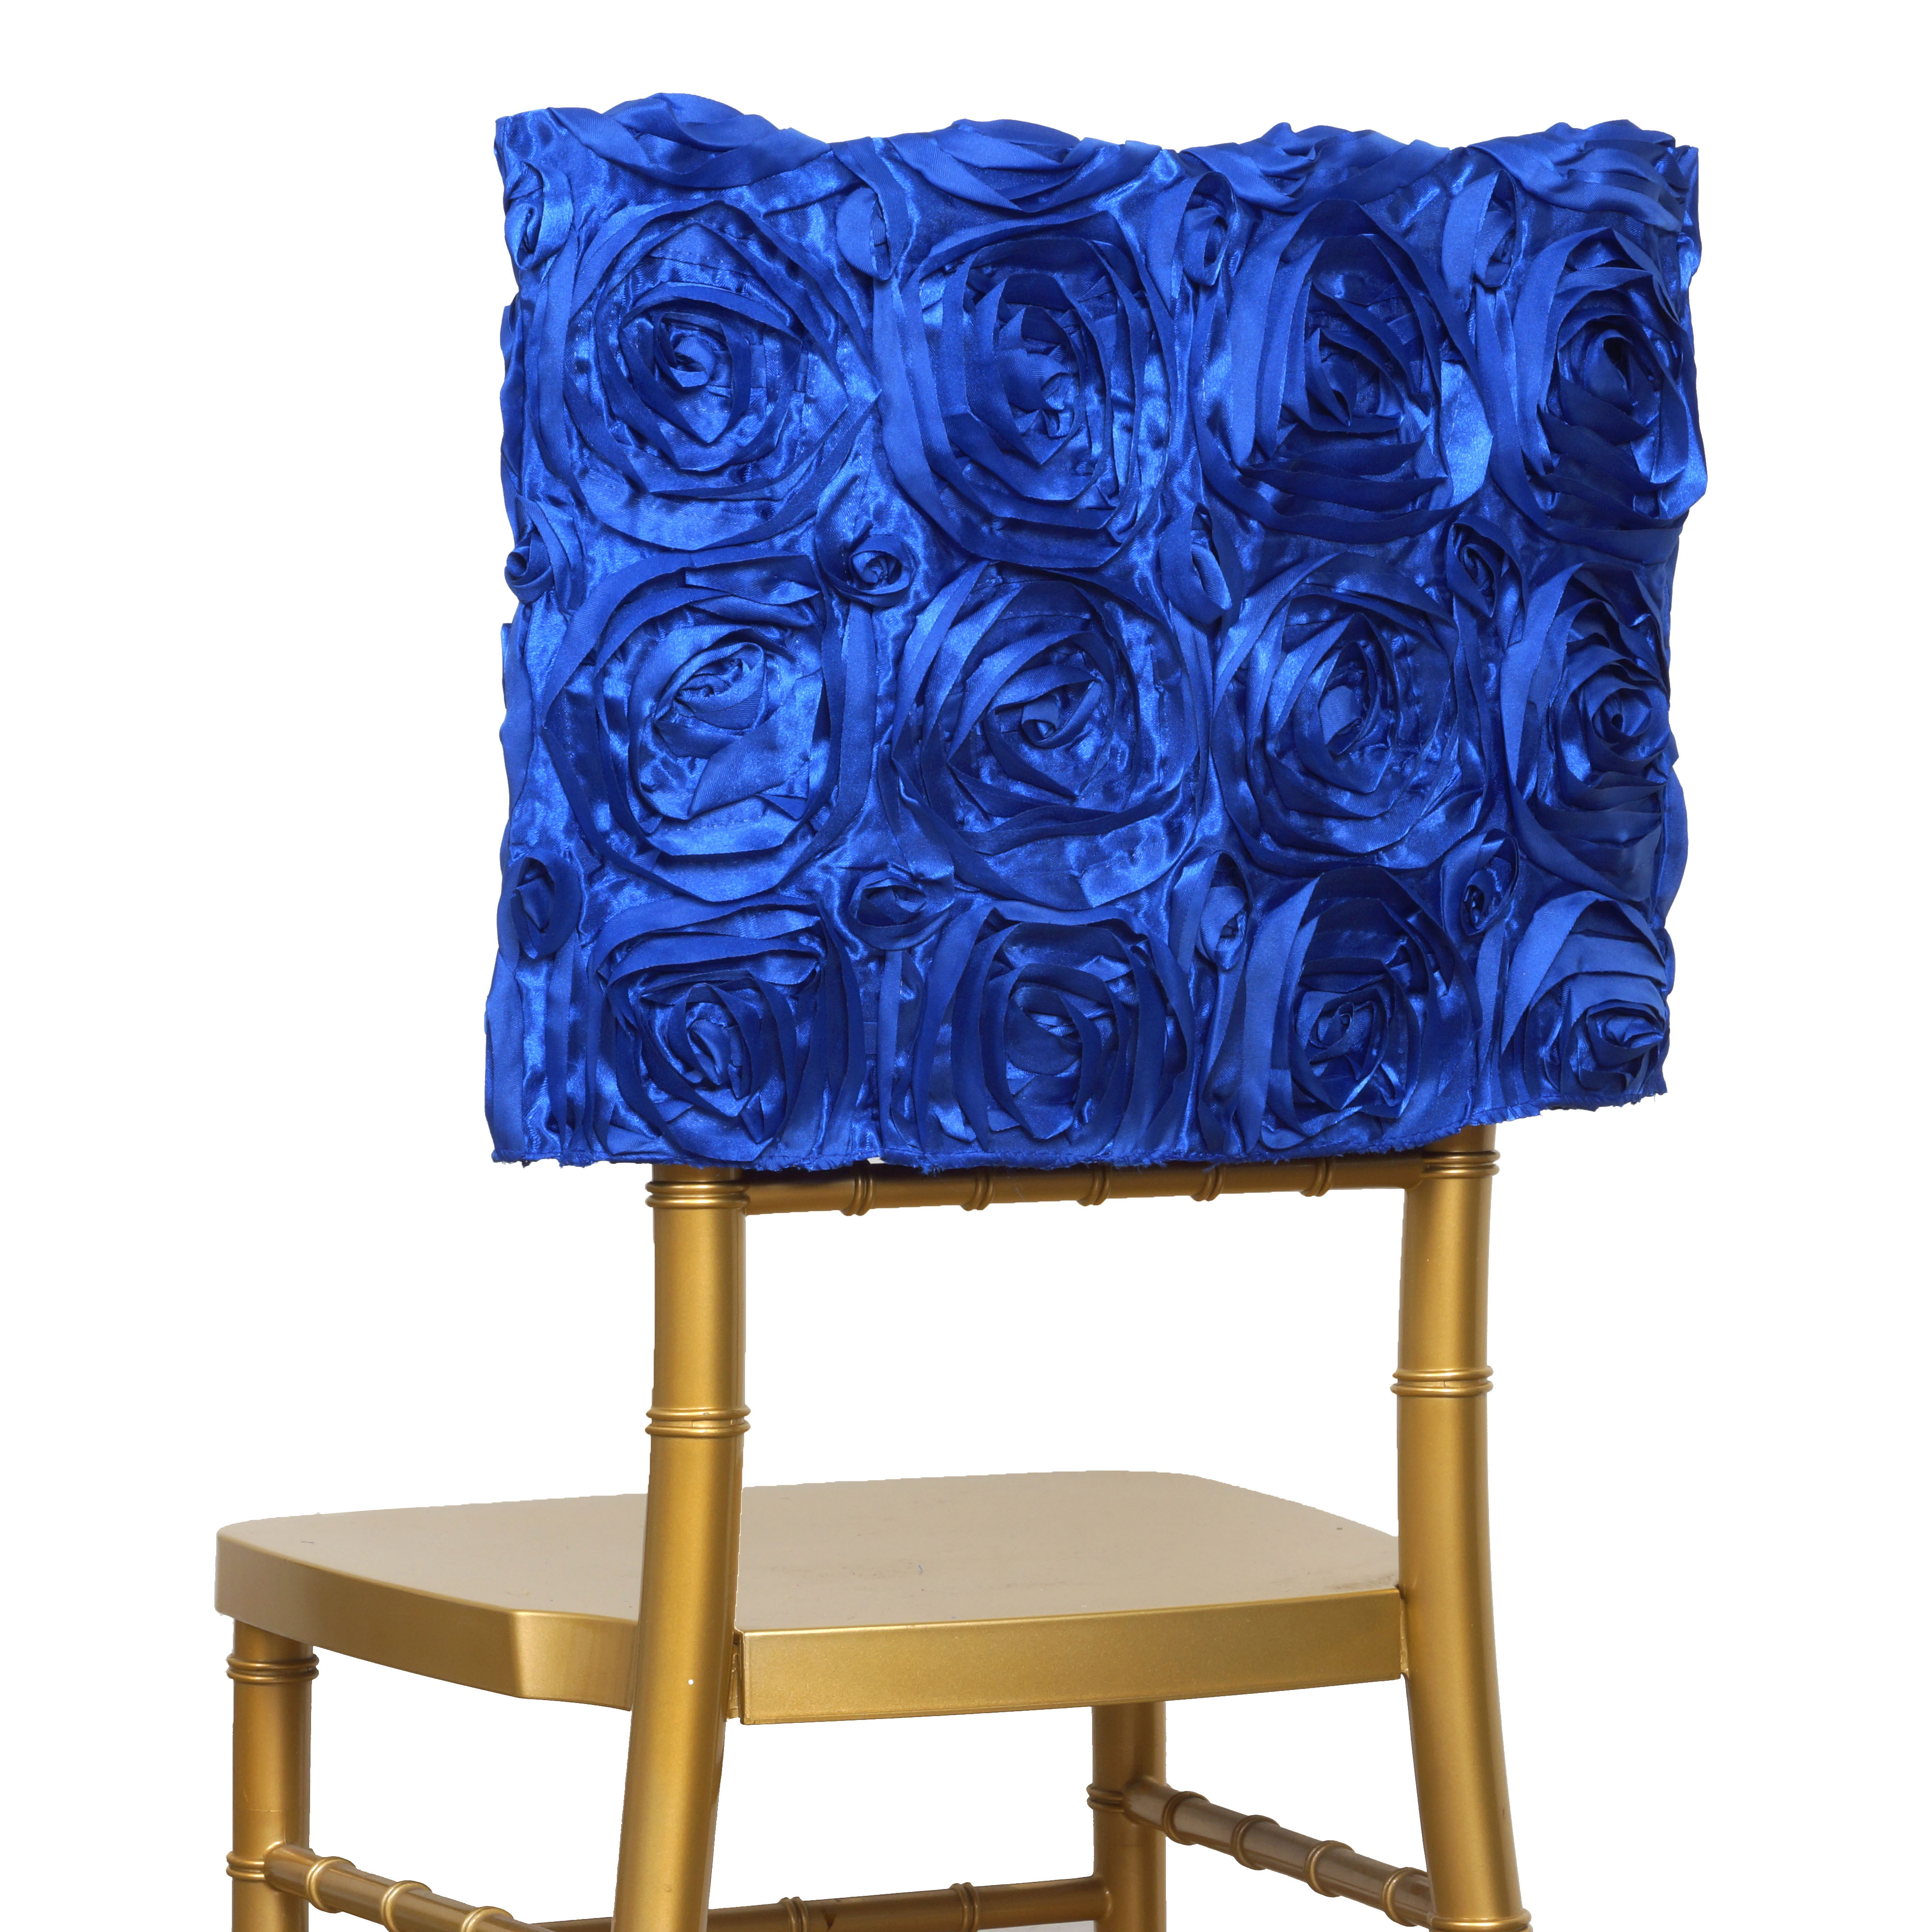 Stupendous Details About Royal Blue Chair Cover Square Top Cap Party Wedding Reception Decorations Sale Caraccident5 Cool Chair Designs And Ideas Caraccident5Info